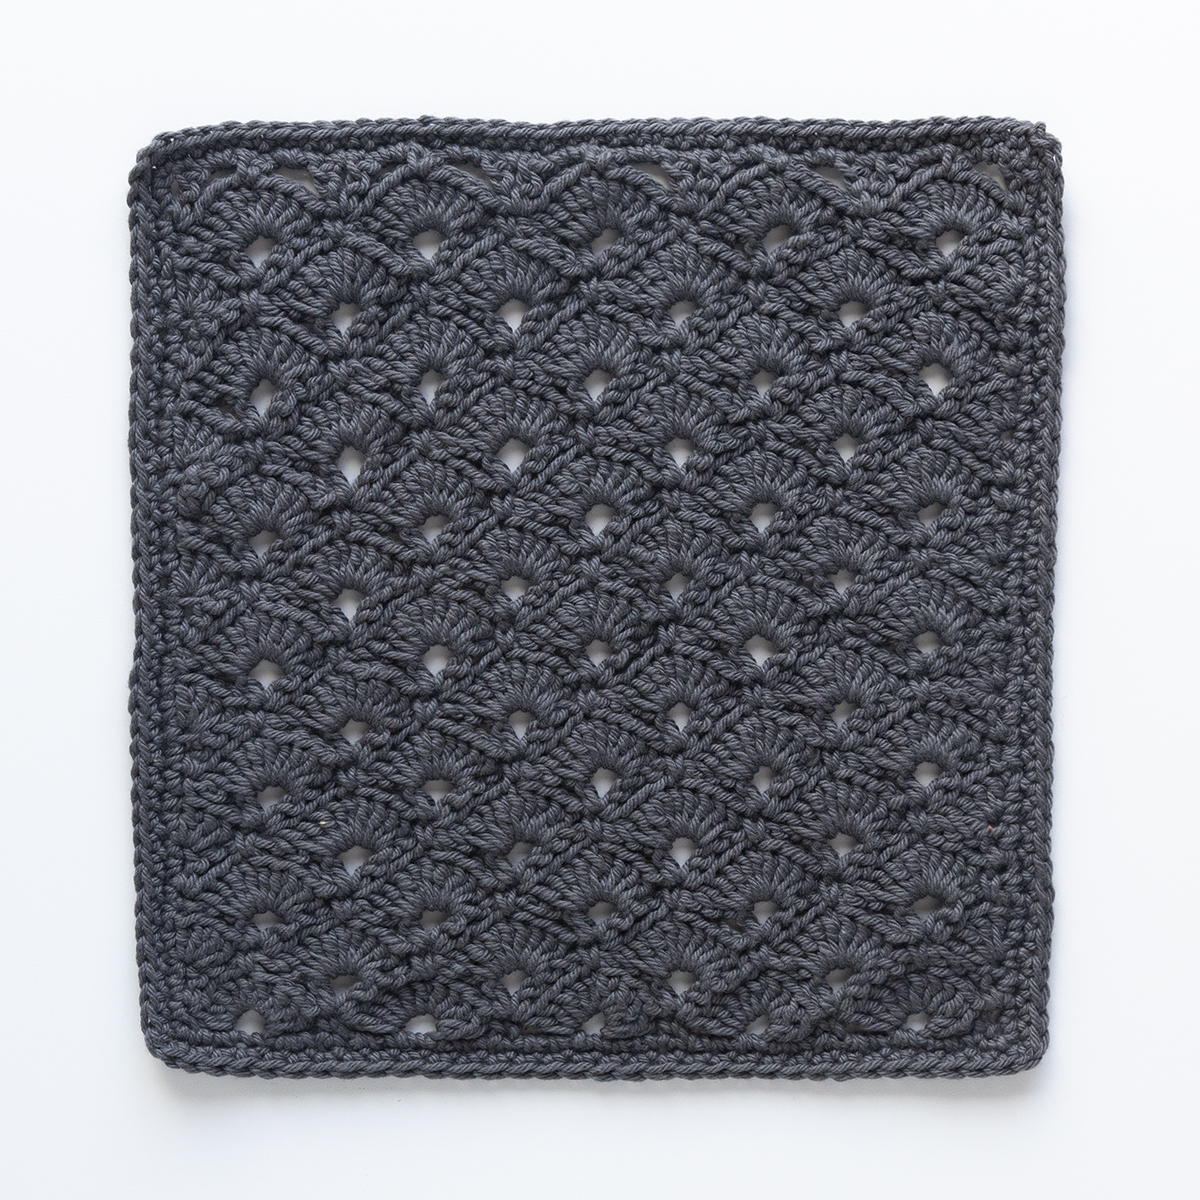 Jazz Age Crochet Washcloth - Knitting Patterns and Crochet Patterns ...